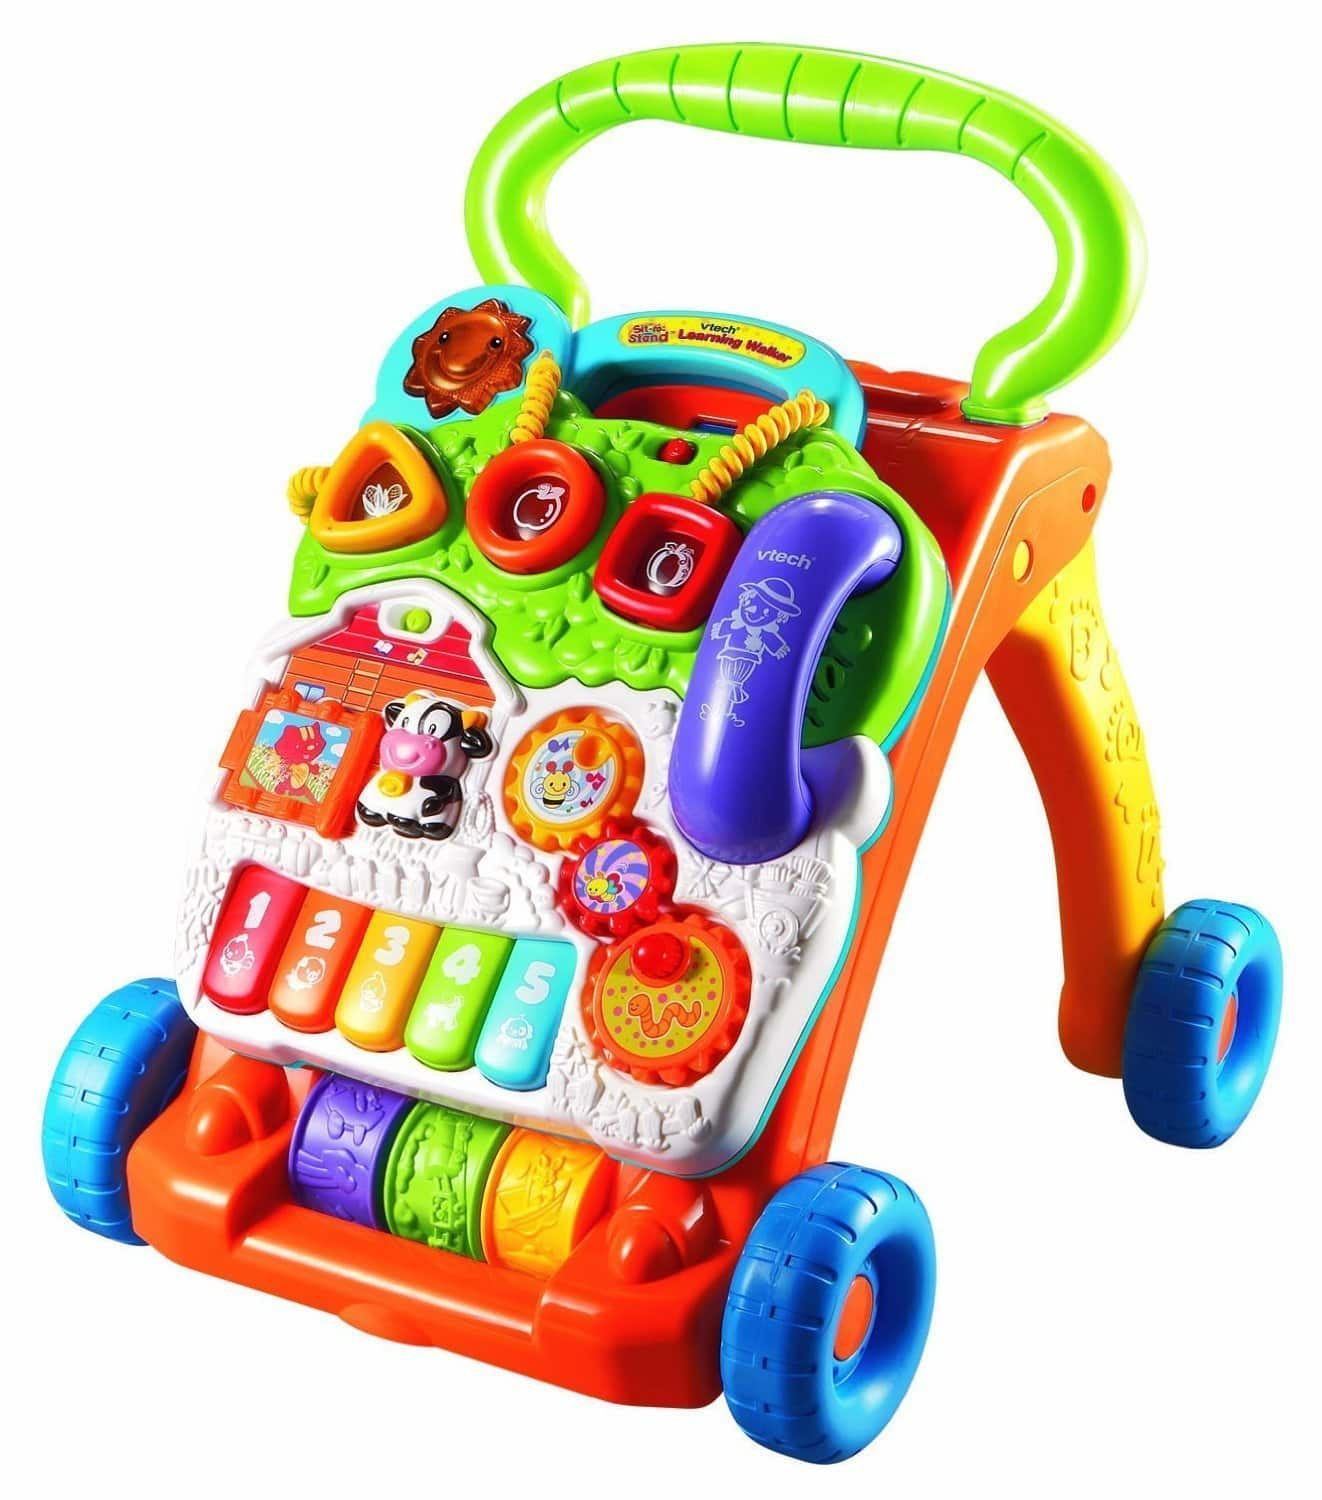 VTech Sit-to-Stand Learning Walker $16.99 w/ in-store pick up at Kohl's